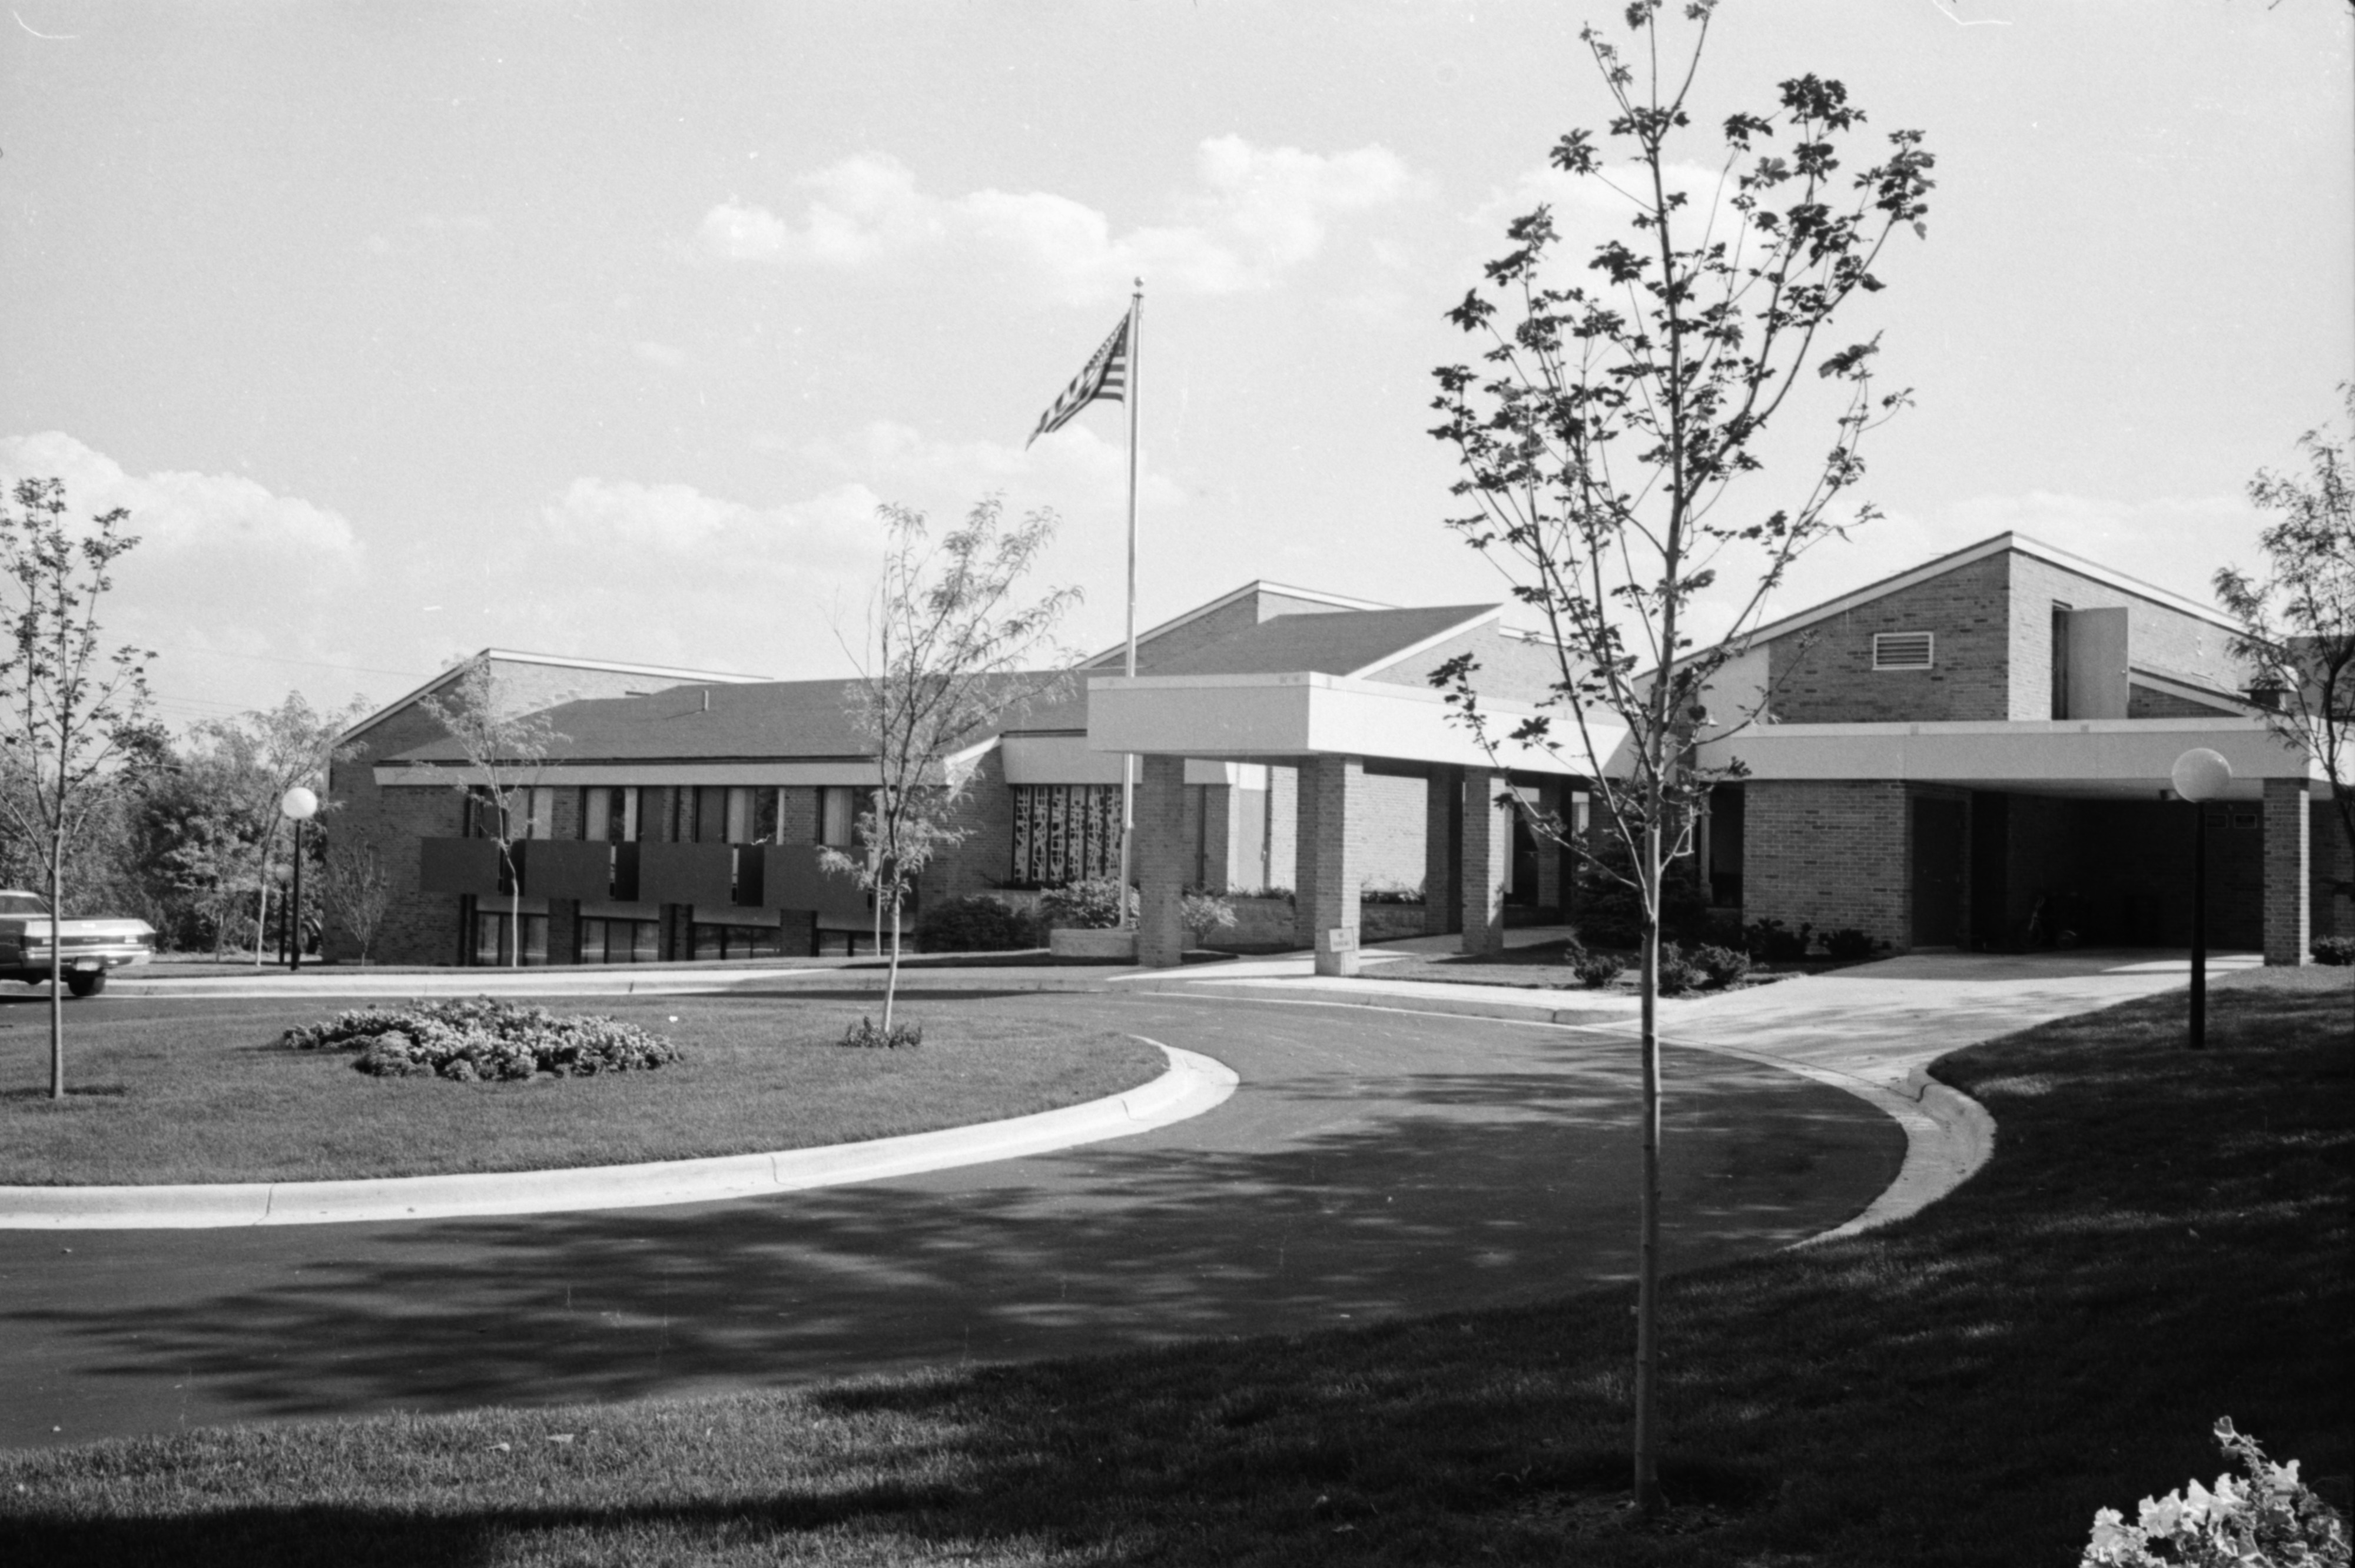 New Retirement Home on Jackson Avenue, October 1969 image